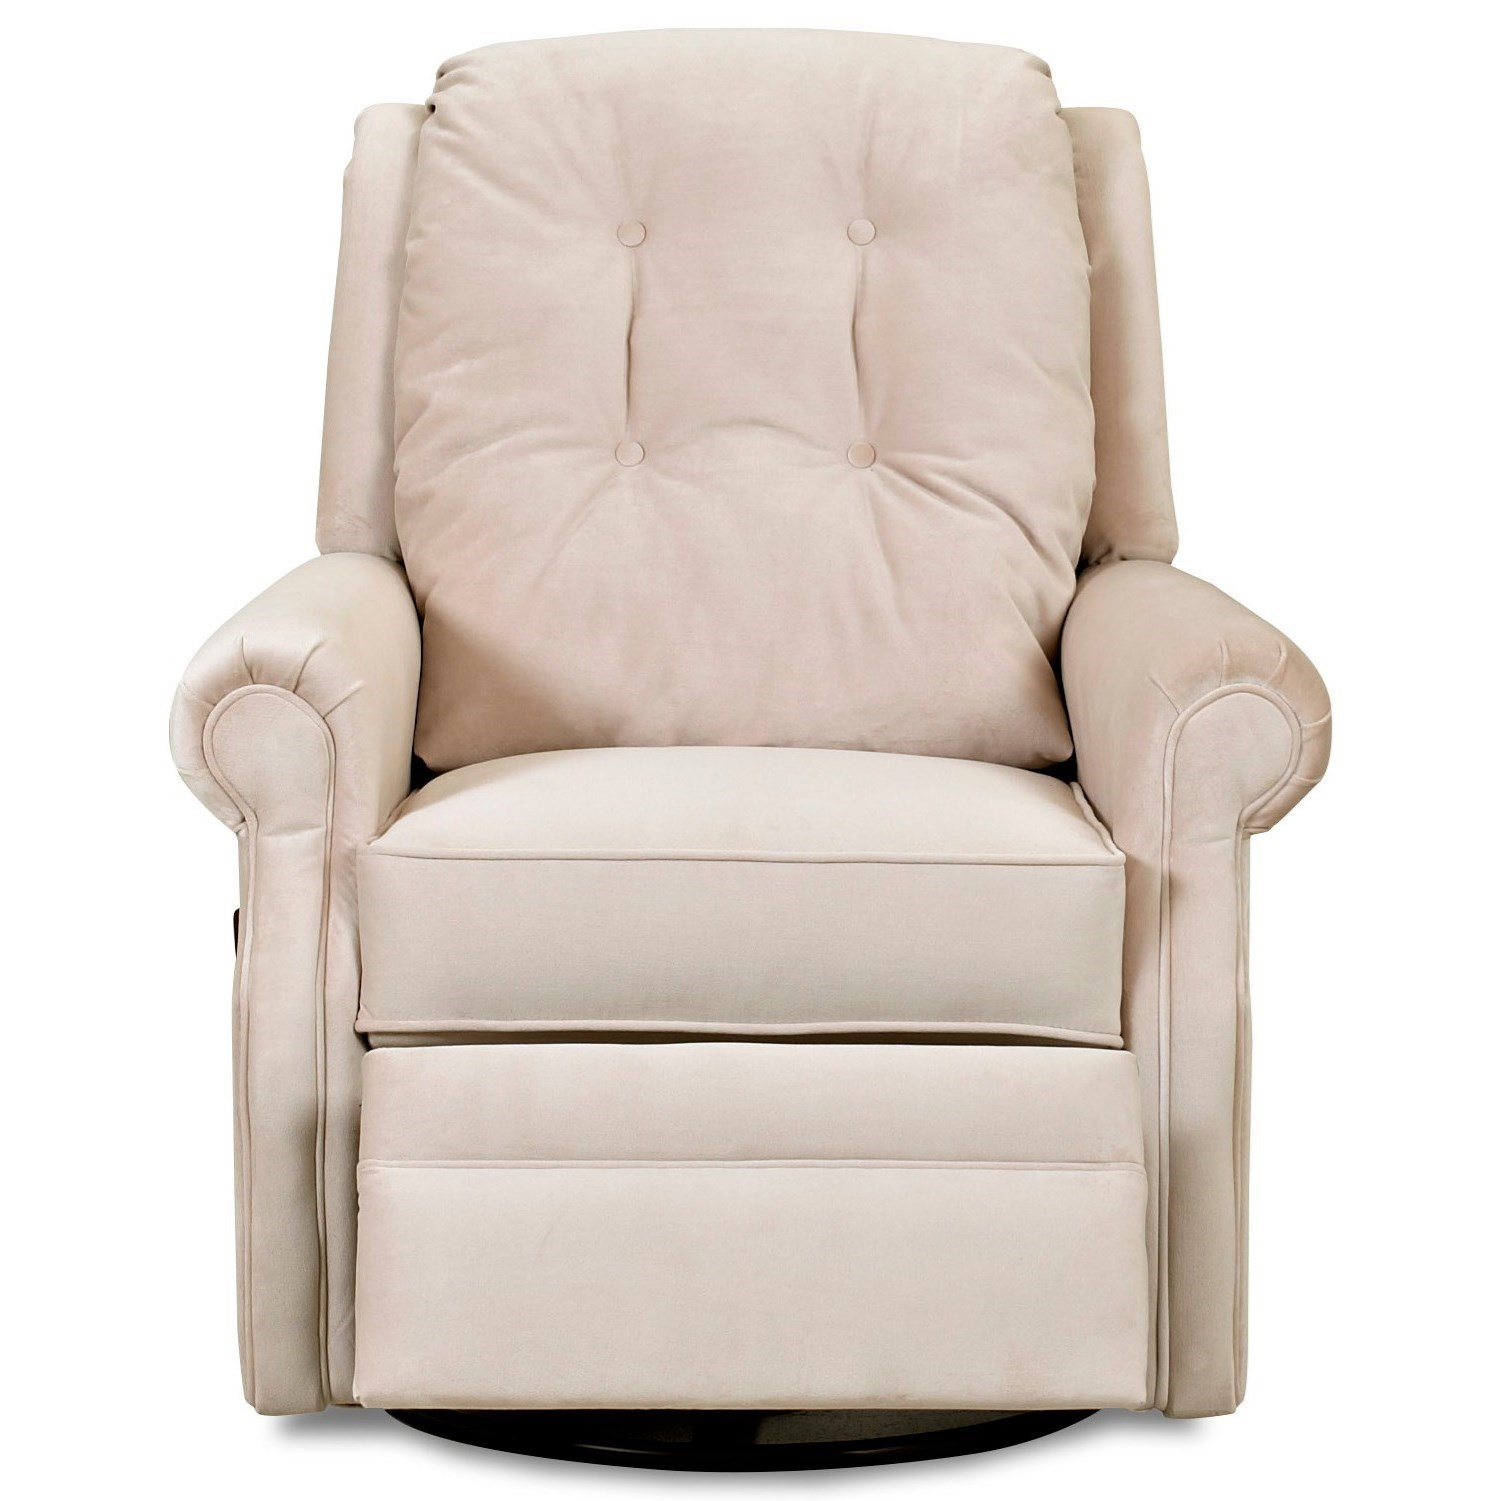 Sand Key Manual Swivel Gliding Reclining Chair by Klaussner at Northeast Factory Direct